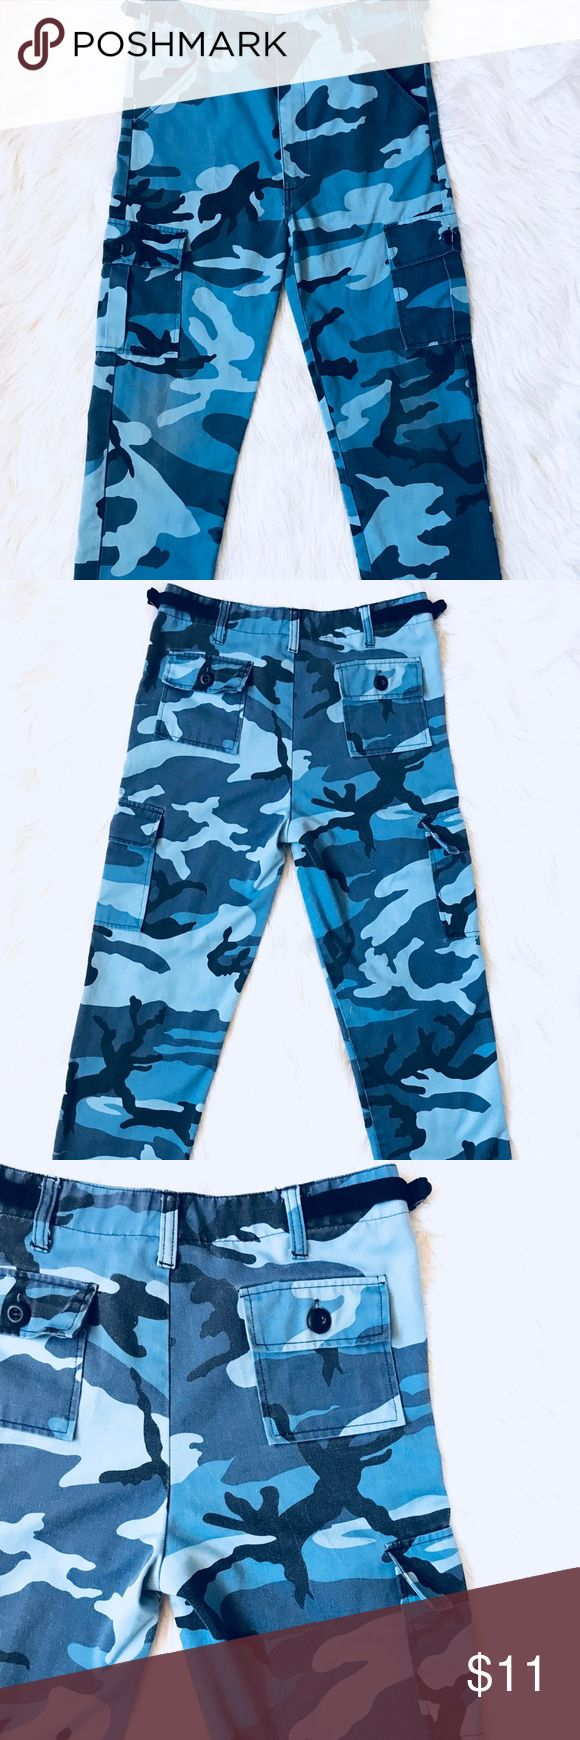 Blue Camo Junior Size 14 Jean Pants with 6 Pockets - Blue Camo Junior Size 14 Jean Pants with 6 Pockets - Tag says Size 14, Inseam up to 26 inches, and Waist 25-29 inches  - Kid Juniors - Has 6 pockets throughout the jeans, two in the front at the top, two on the both sides, and two at the top on the back - Has drawstrings on the bottom of the jeans, one string is ripped (shown in photo) still works though  - In great condition, one knee has a little wear Bottoms Jeans